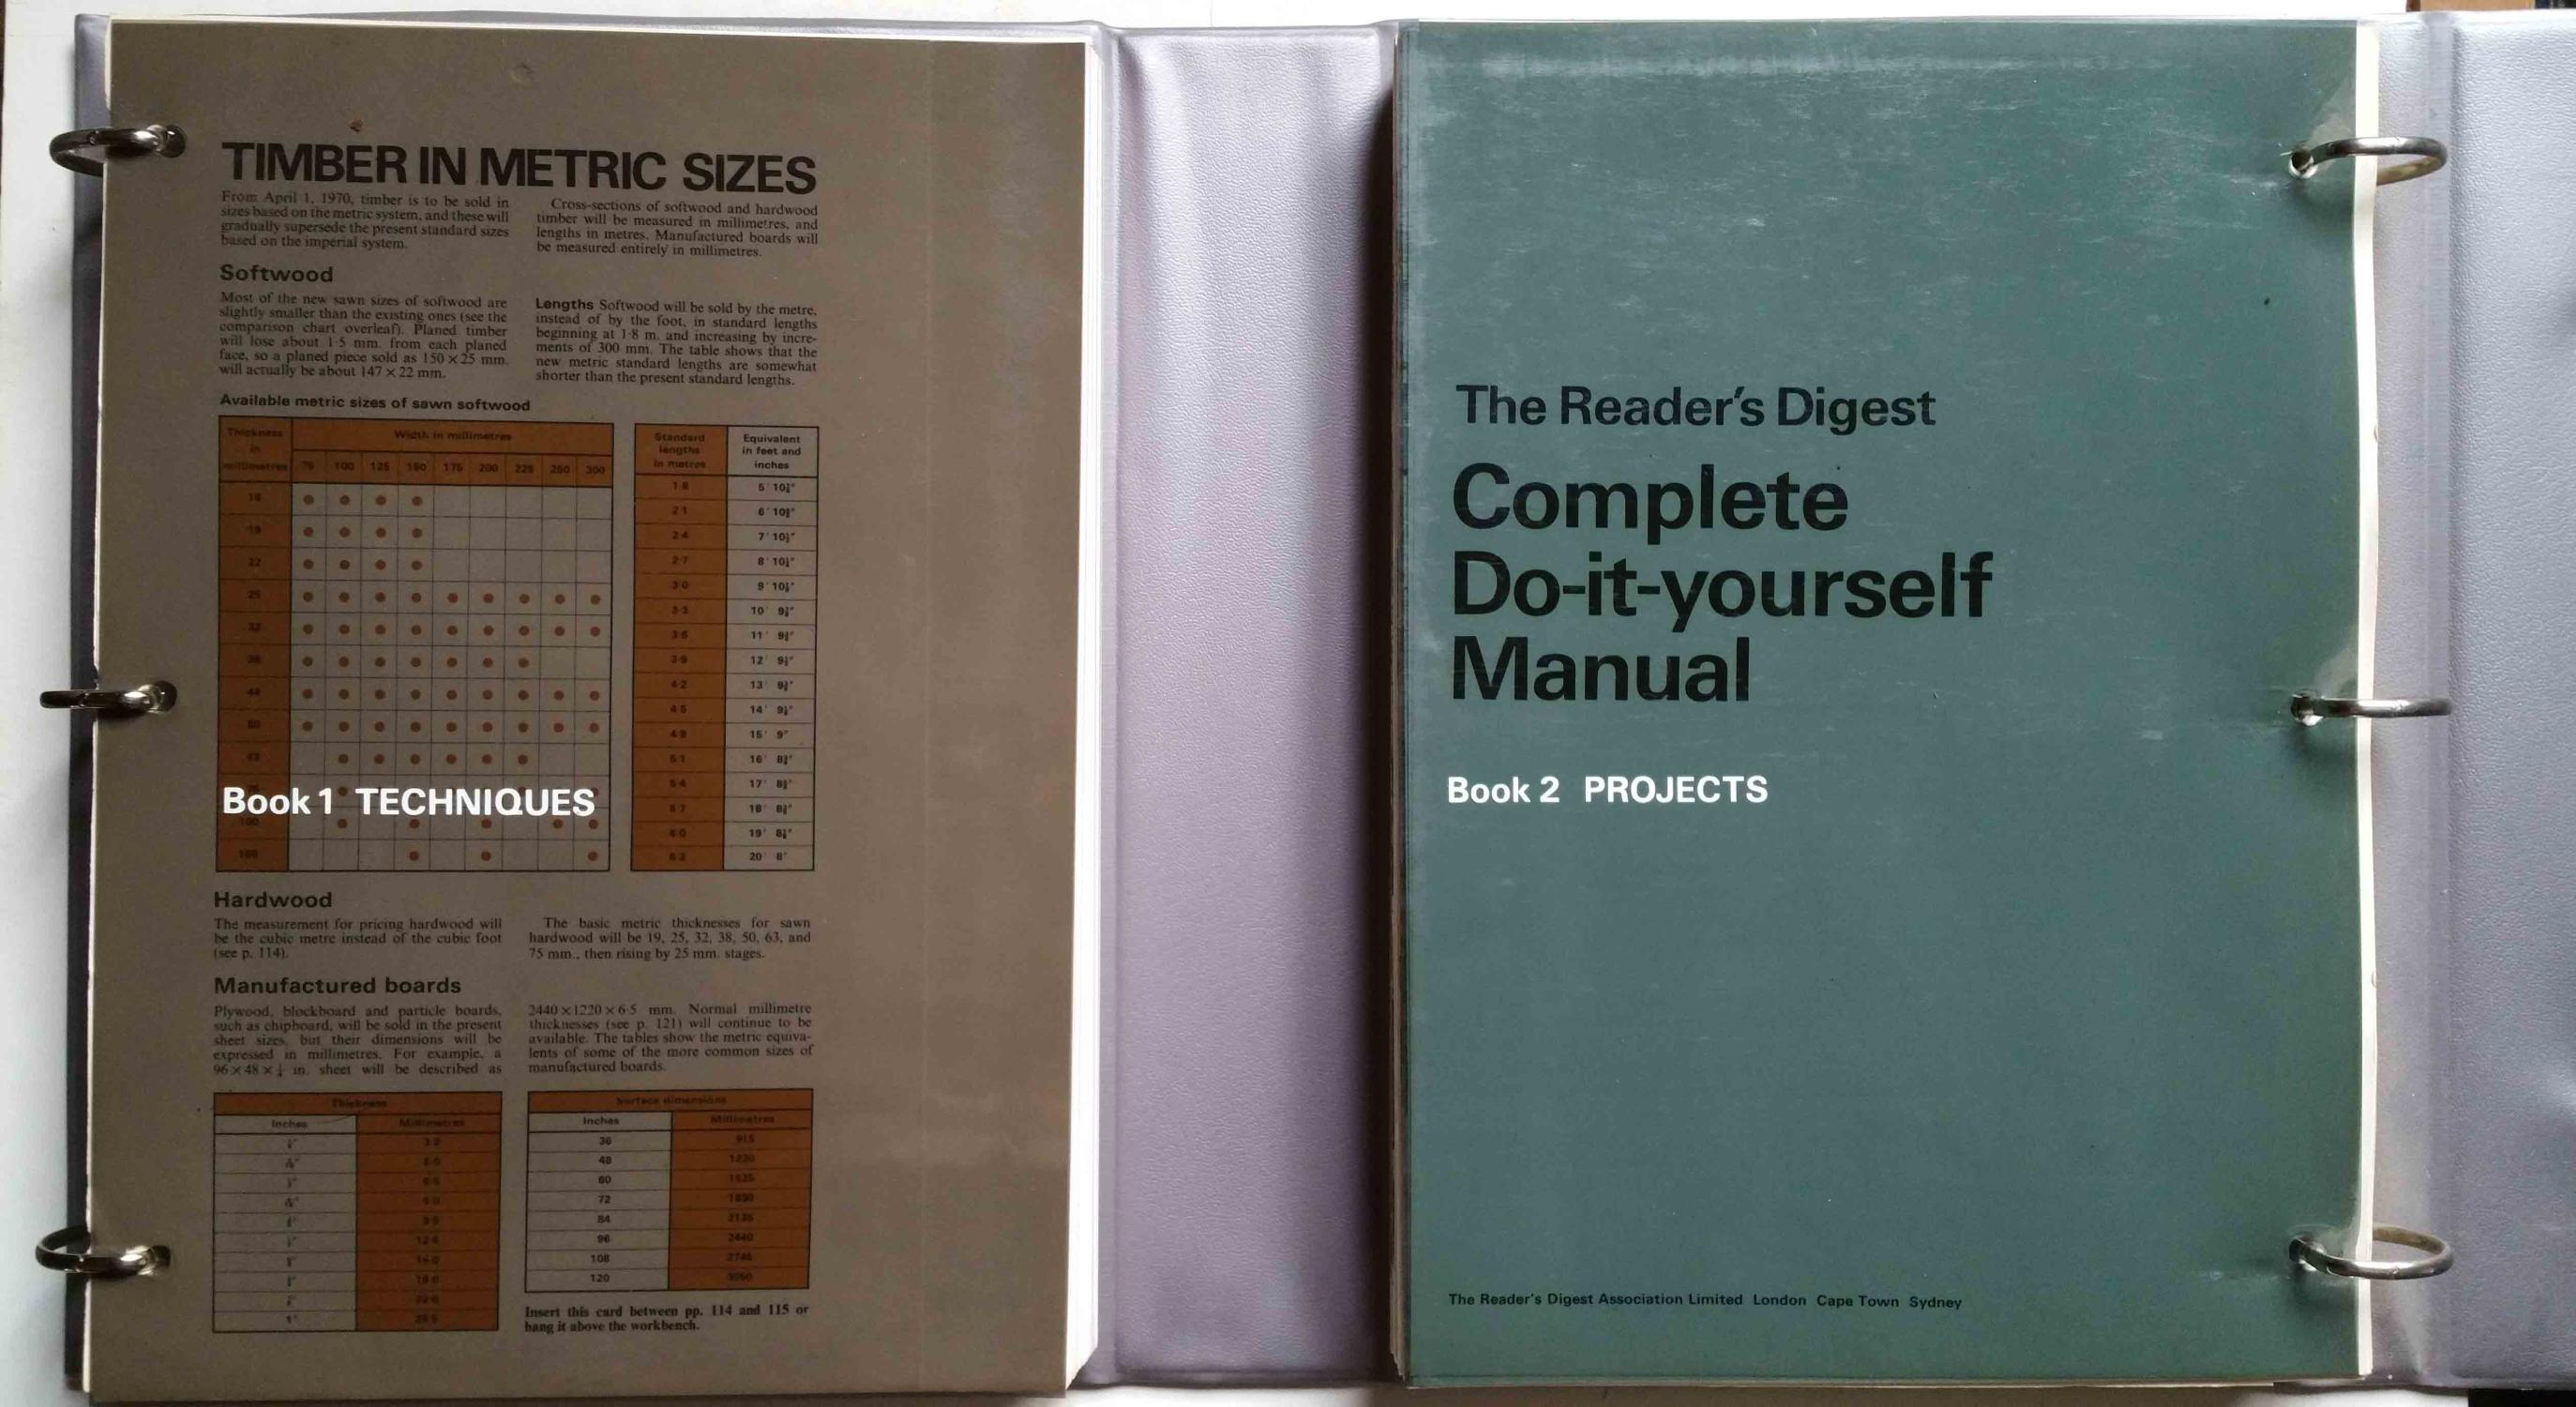 The readers digest complete do it yourself manual by nicholas j the readers digest complete do it yourself manual nicholas j frewing solutioingenieria Gallery